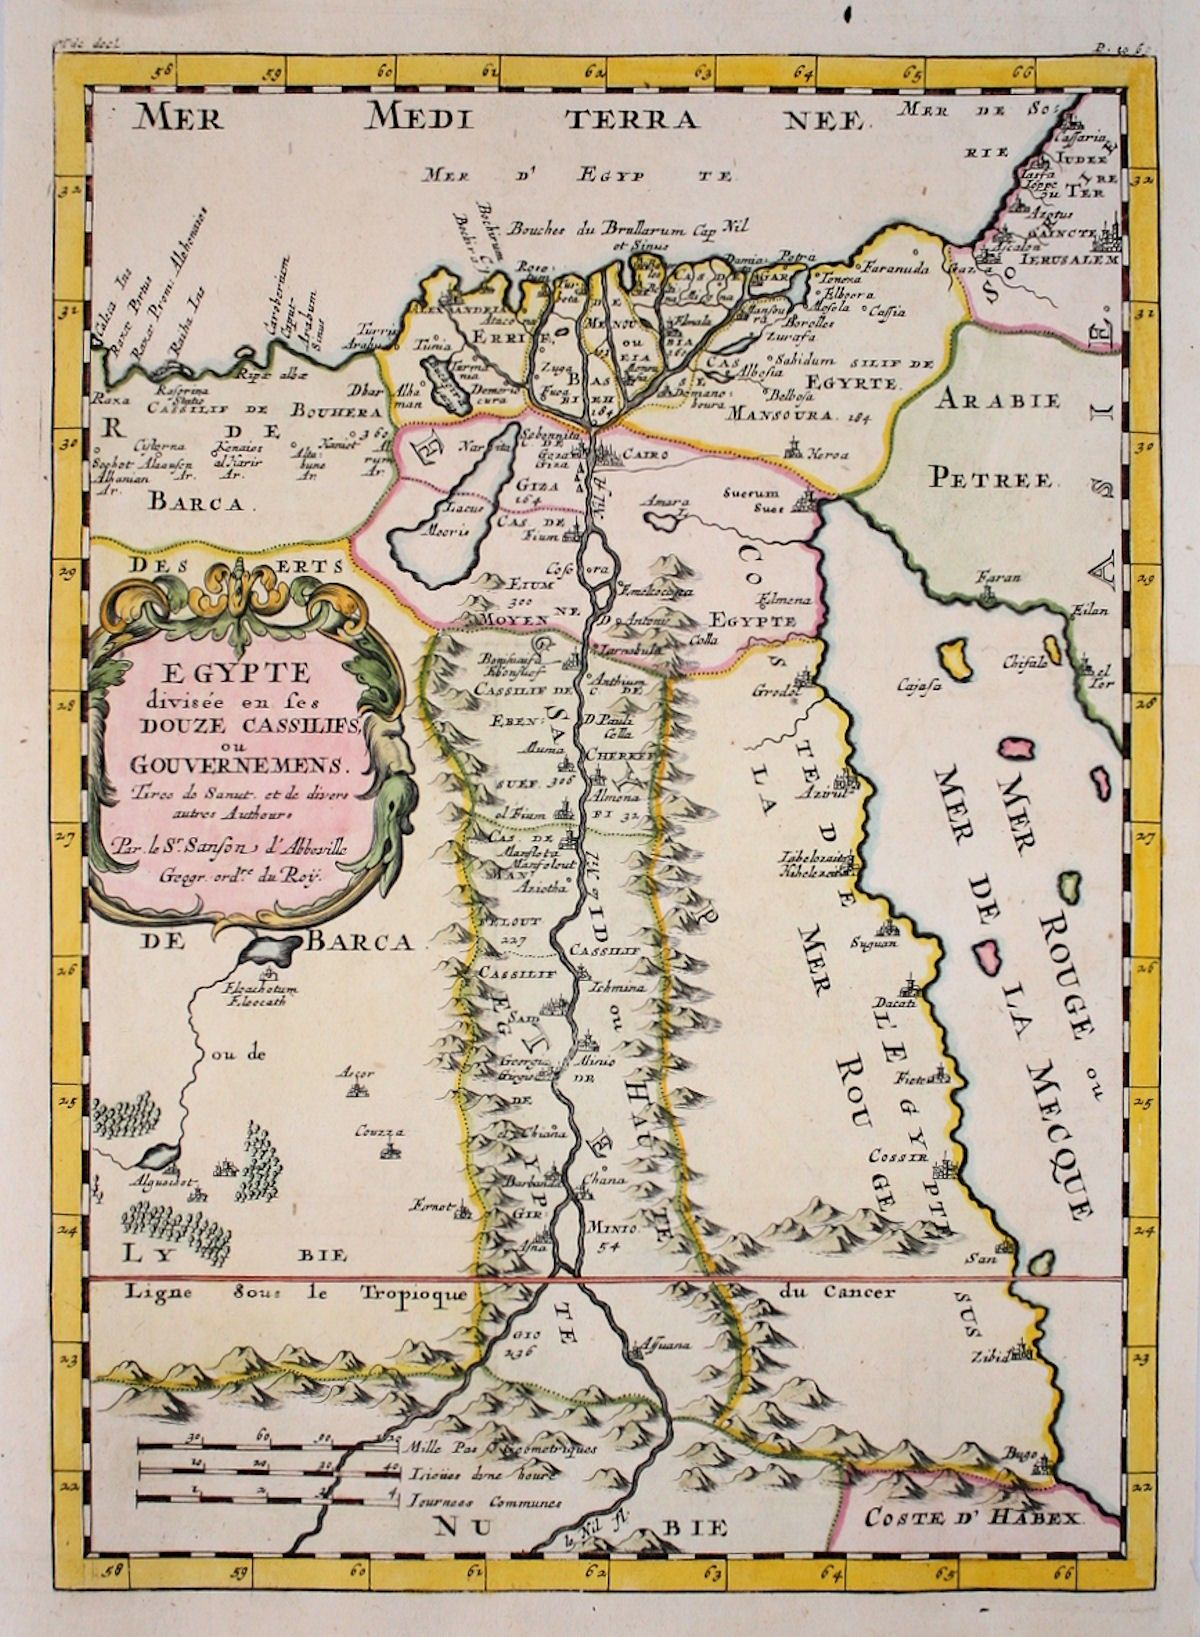 Egypt Nile Valley Africa antique map by Sanson/Abberville 1662